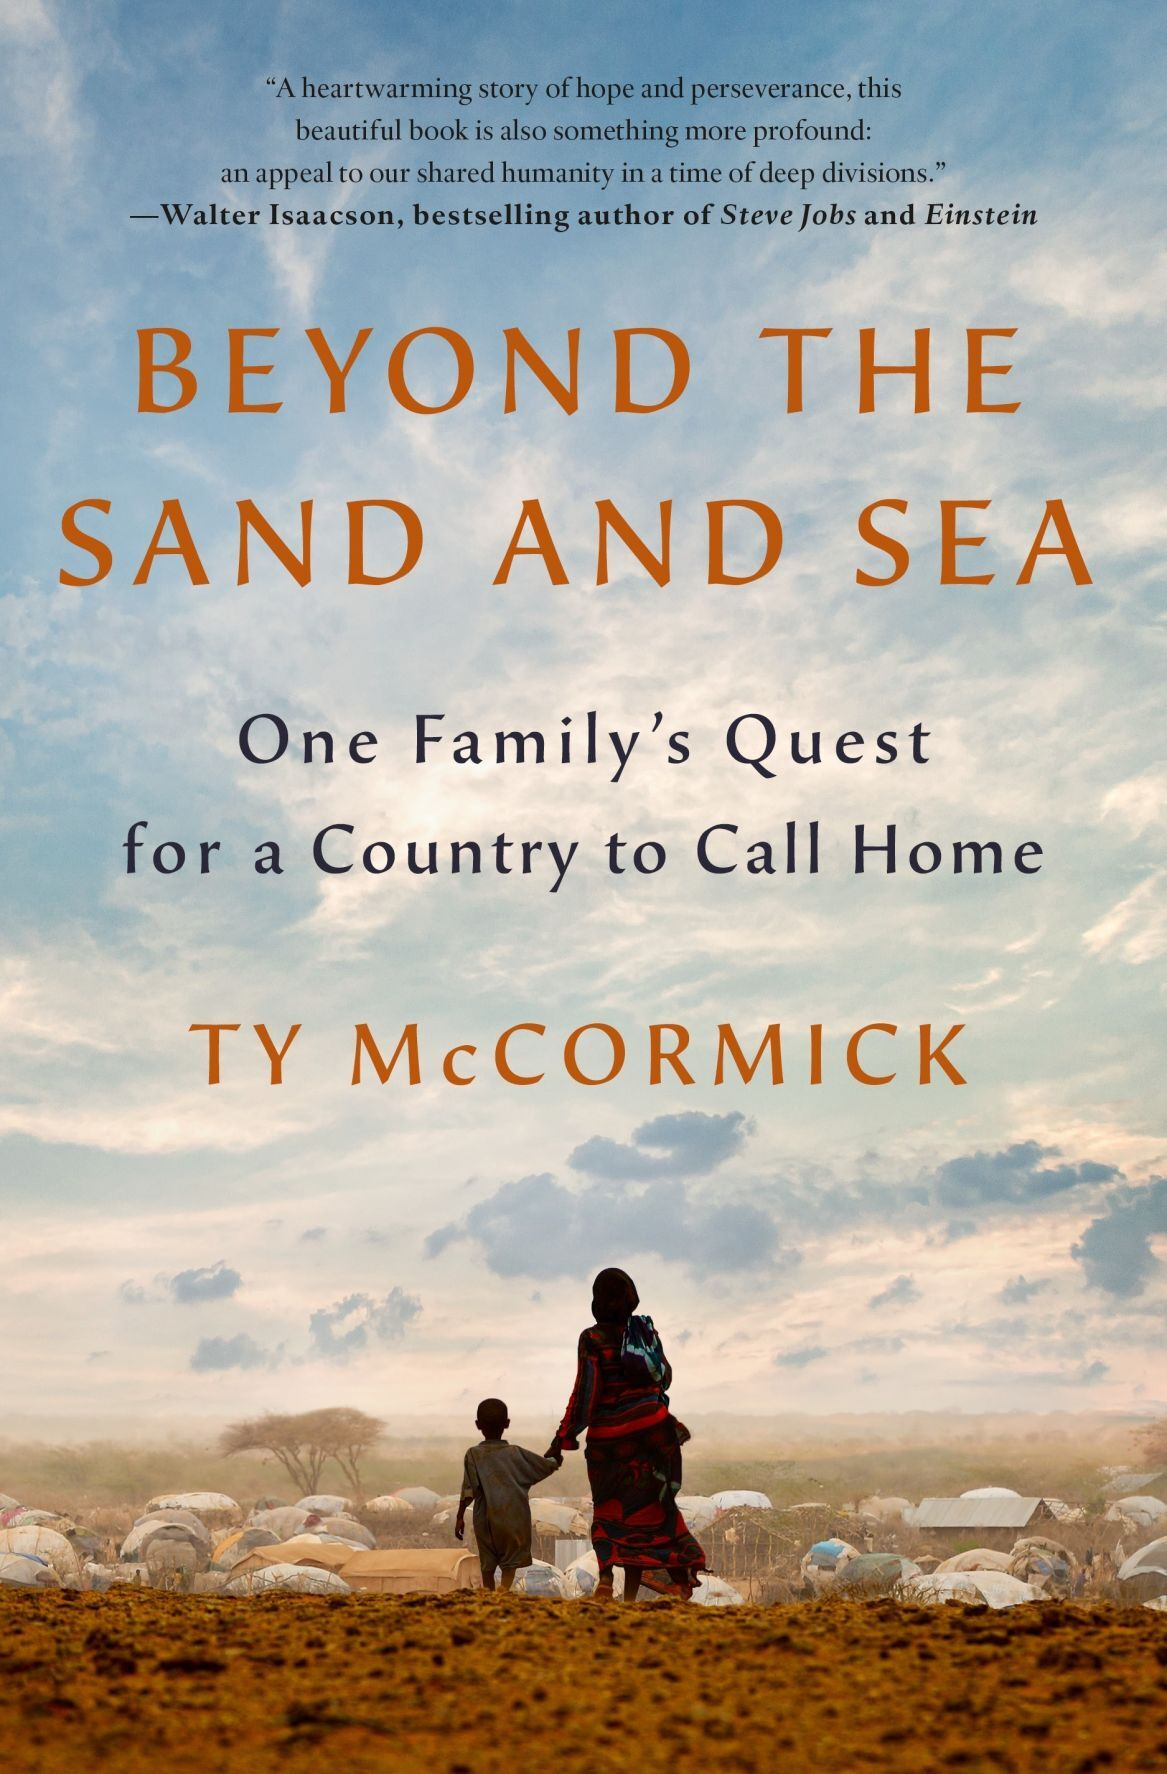 'Beyond the Sand and Sea' shows the grit of immigrants